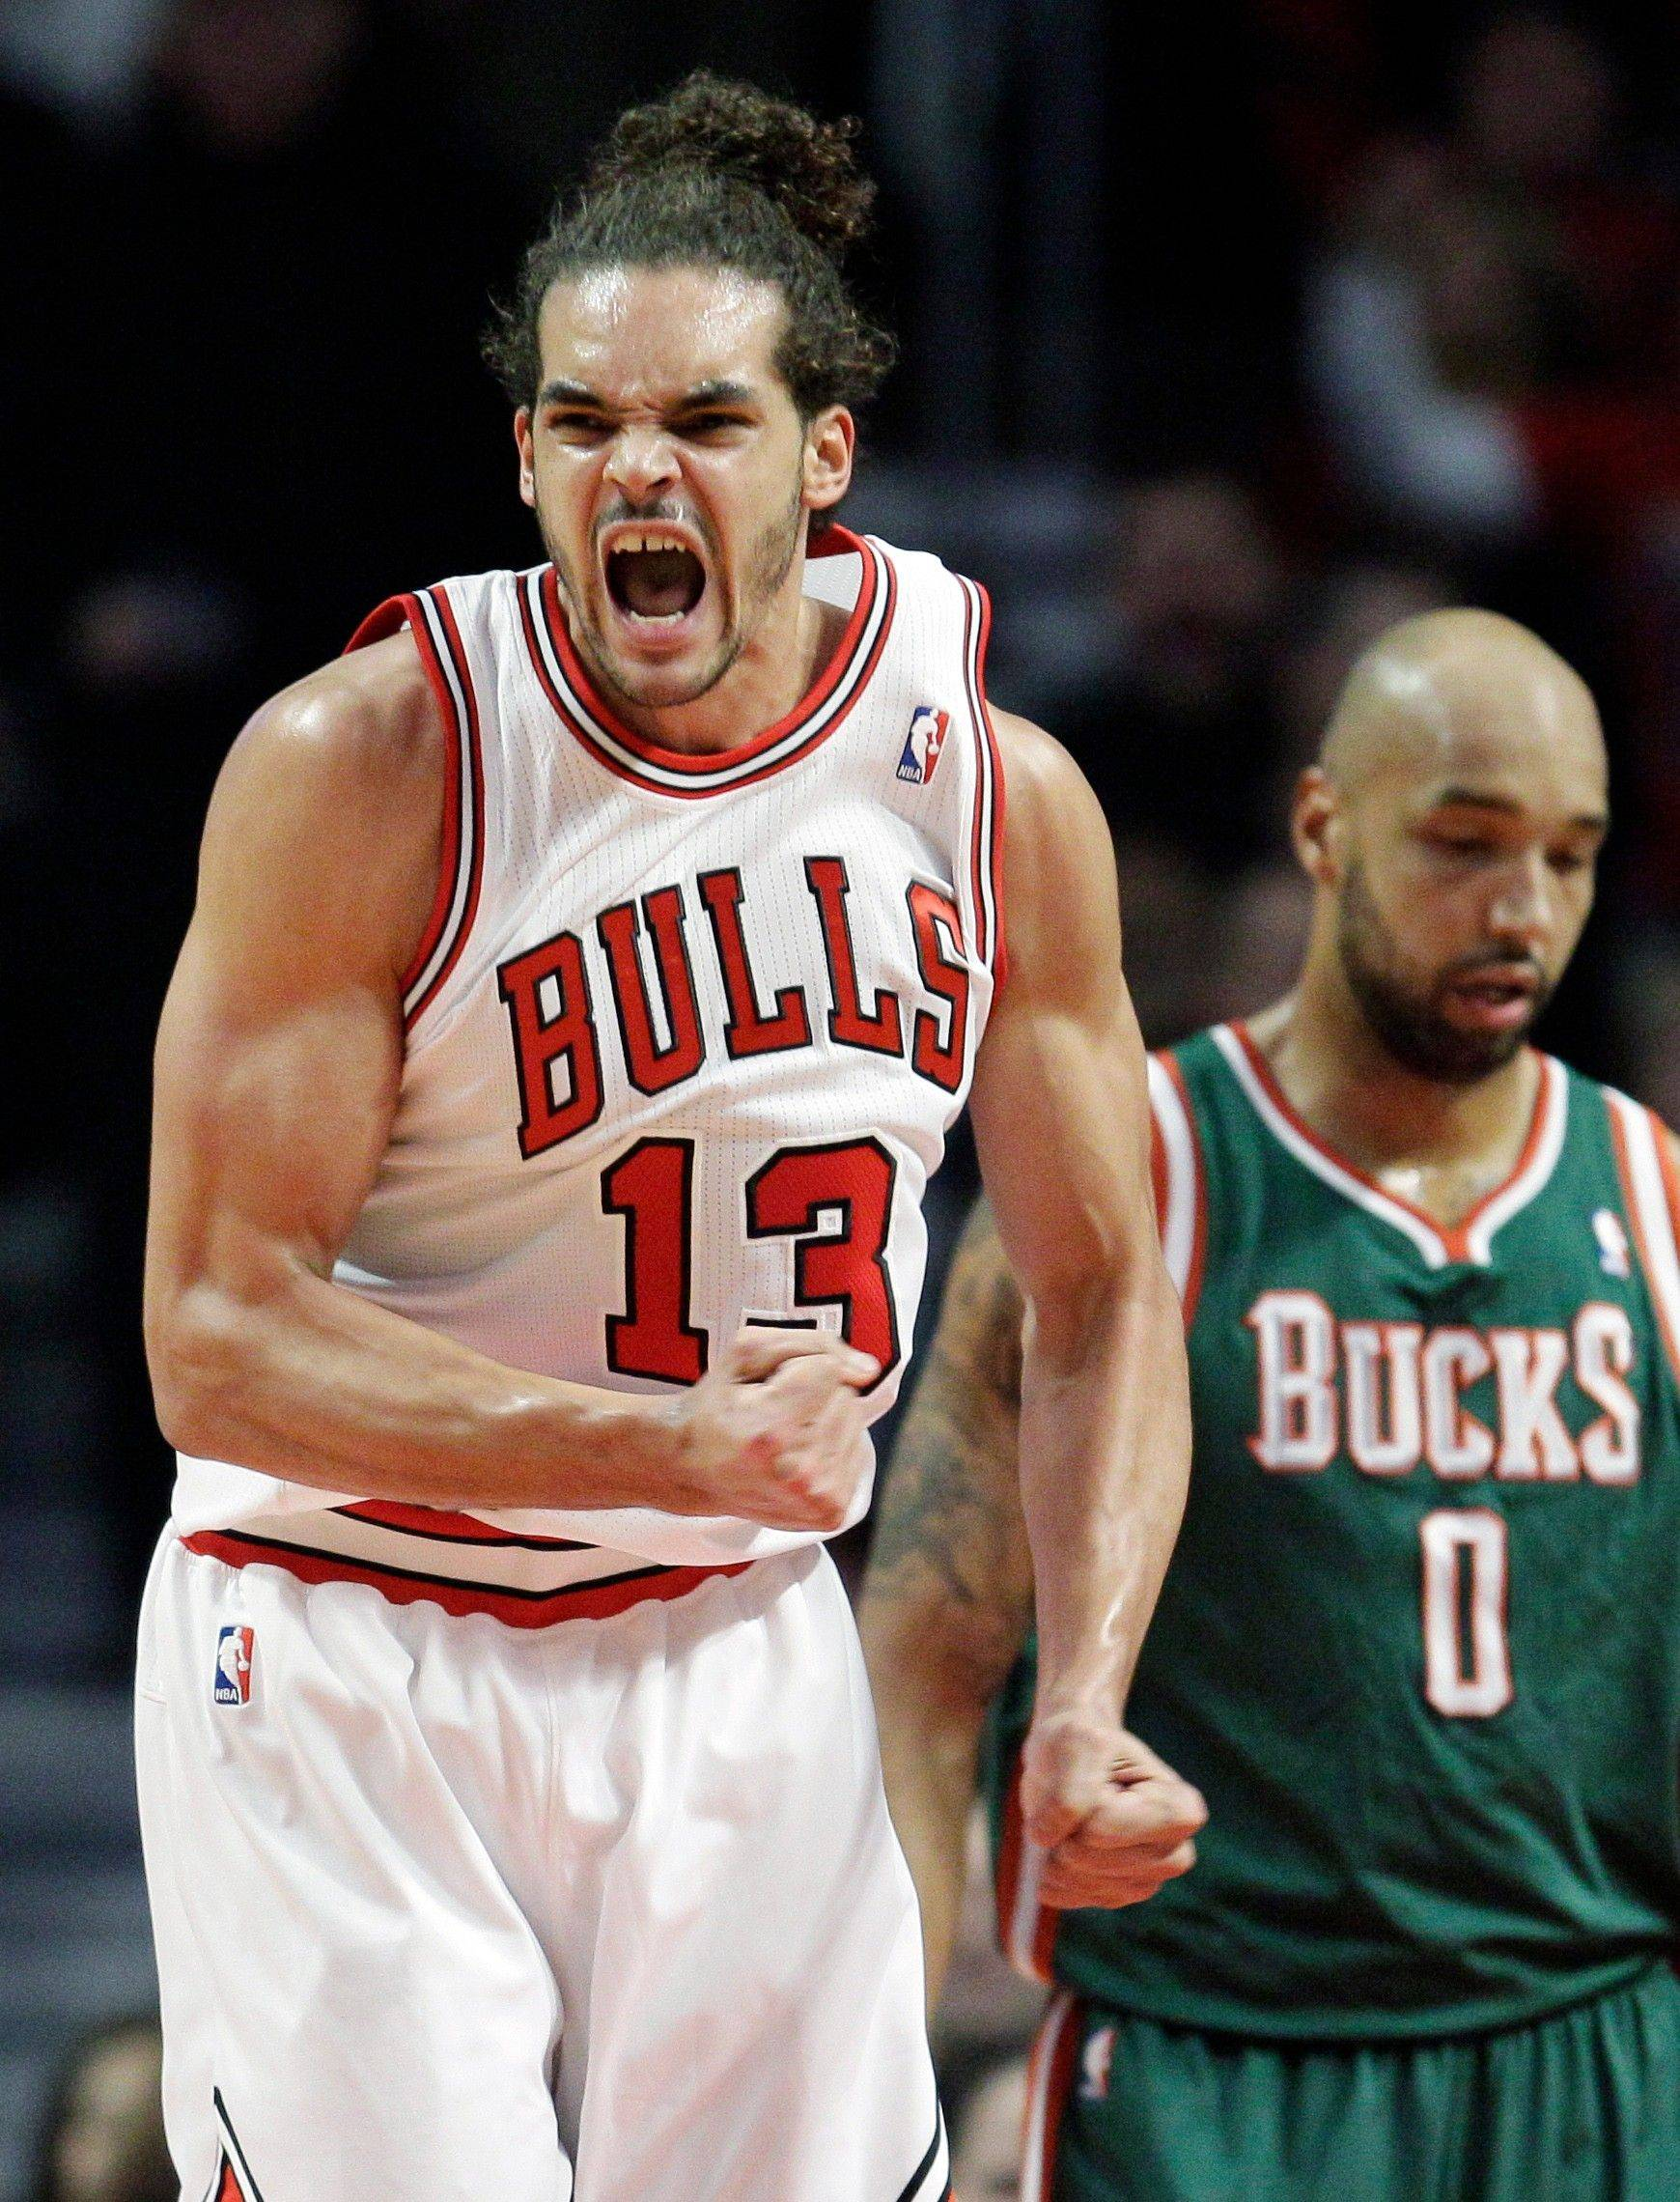 The Bulls' Joakim Noah has averaged more than 13 points and grabbed over a dozen rebounds in the last five games.